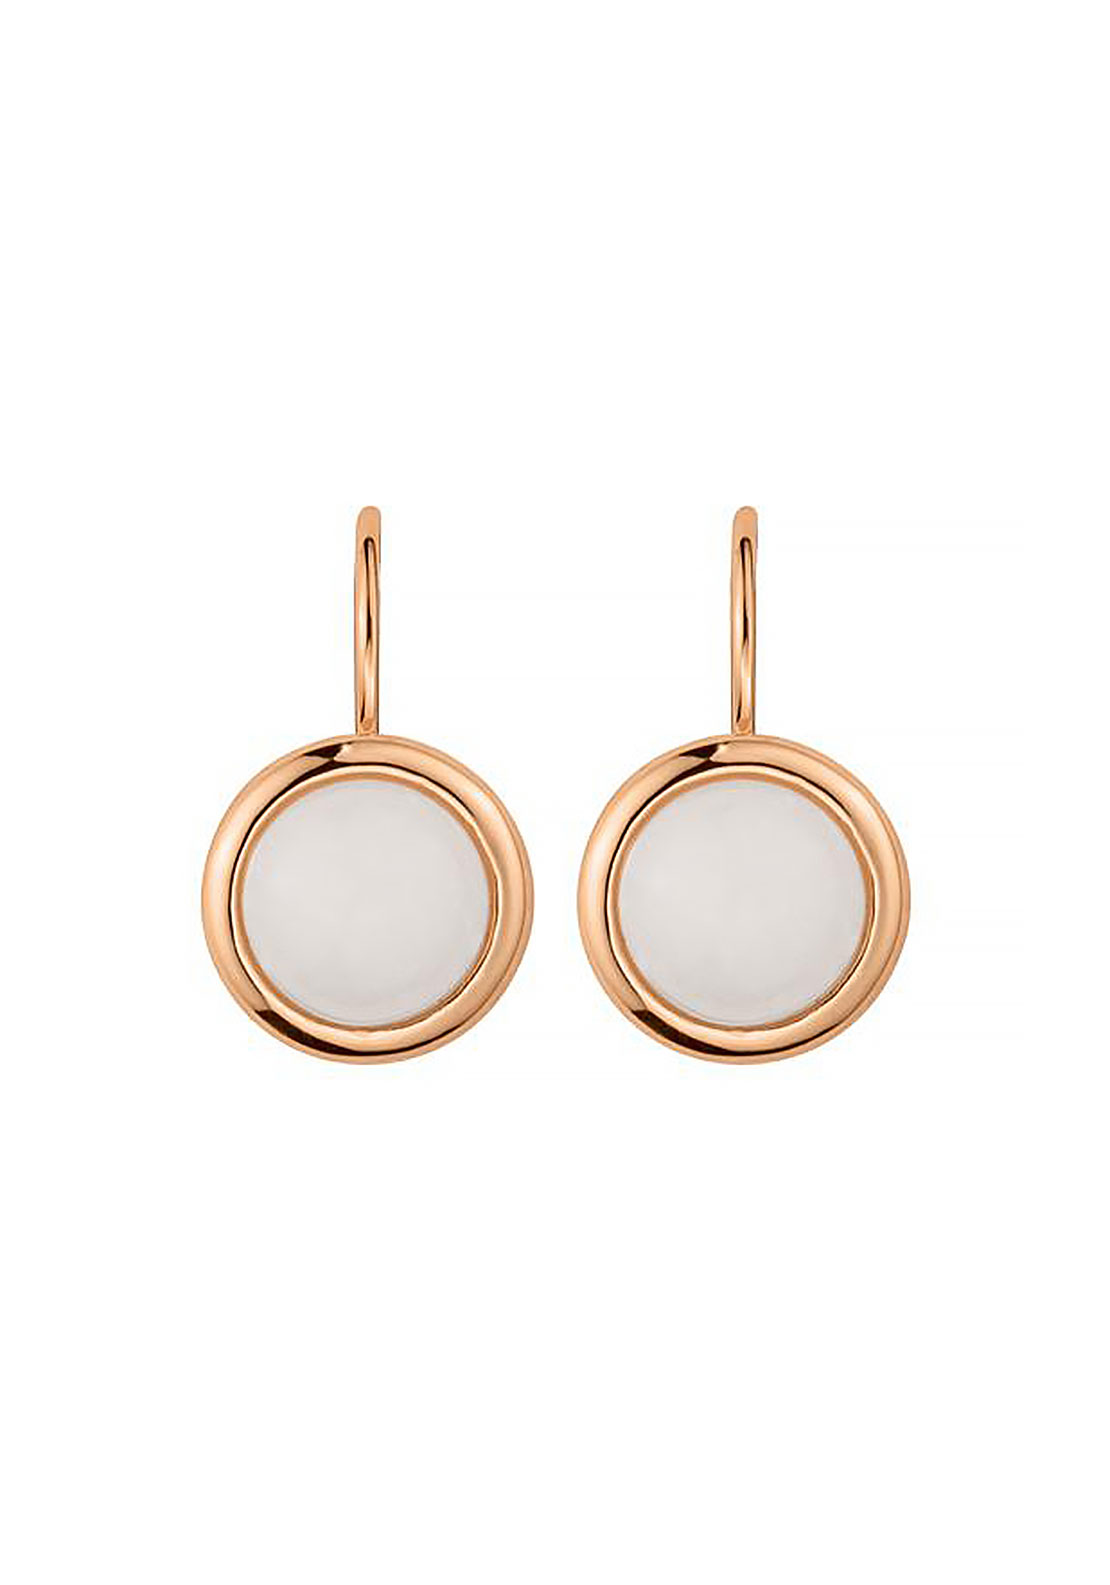 Dyrberg Kern Poala Earrings, White & Rose Gold